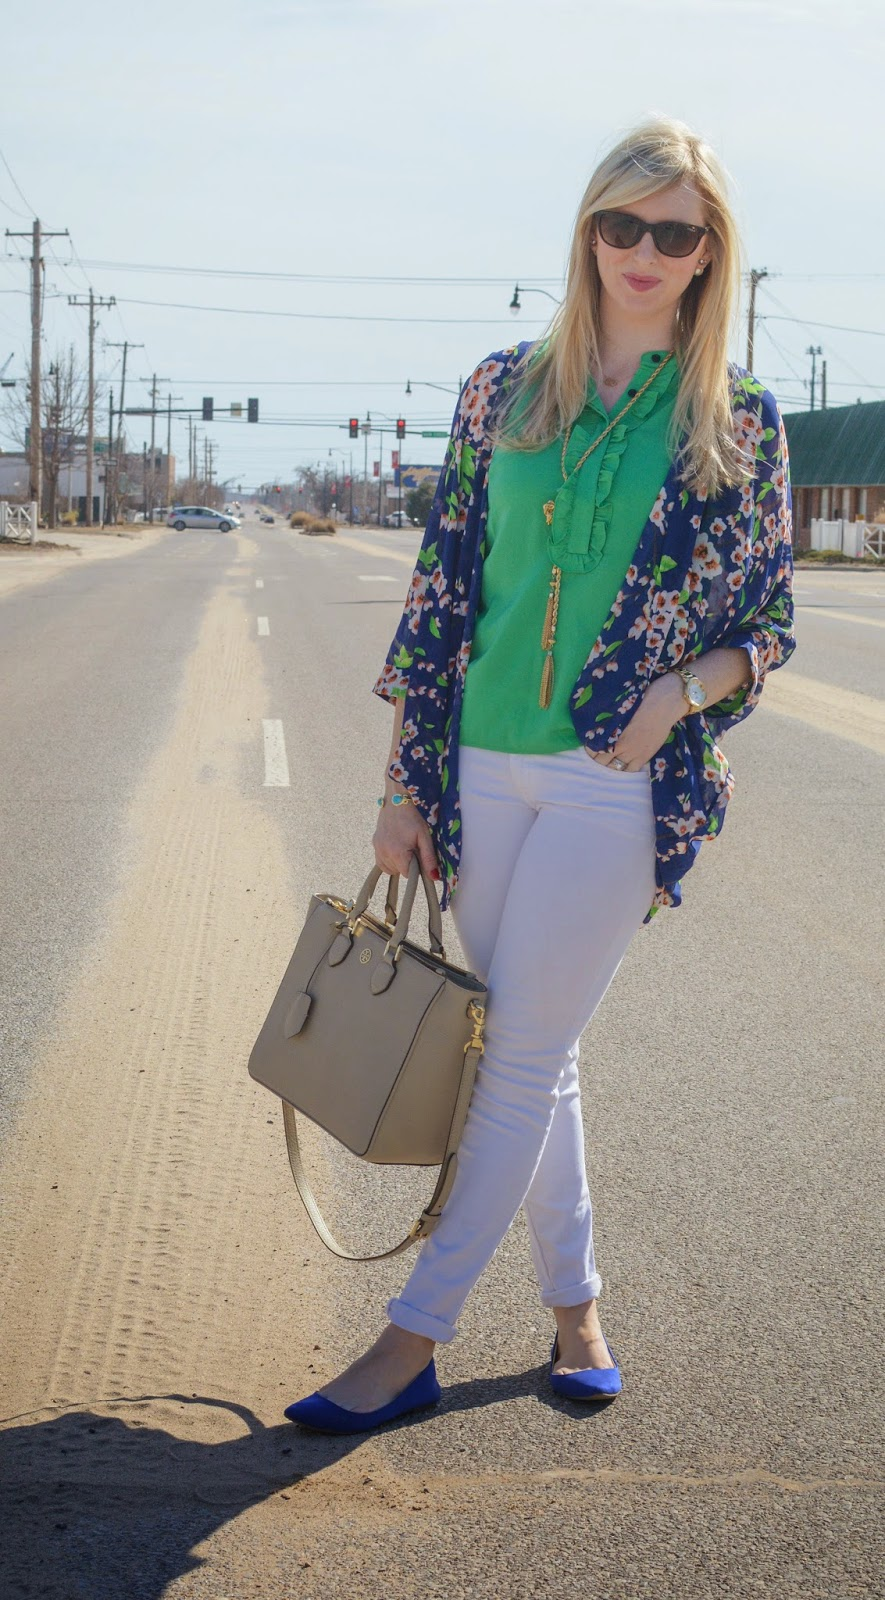 Spring Must Have Items: Spring MUST Have: Floral Kimono